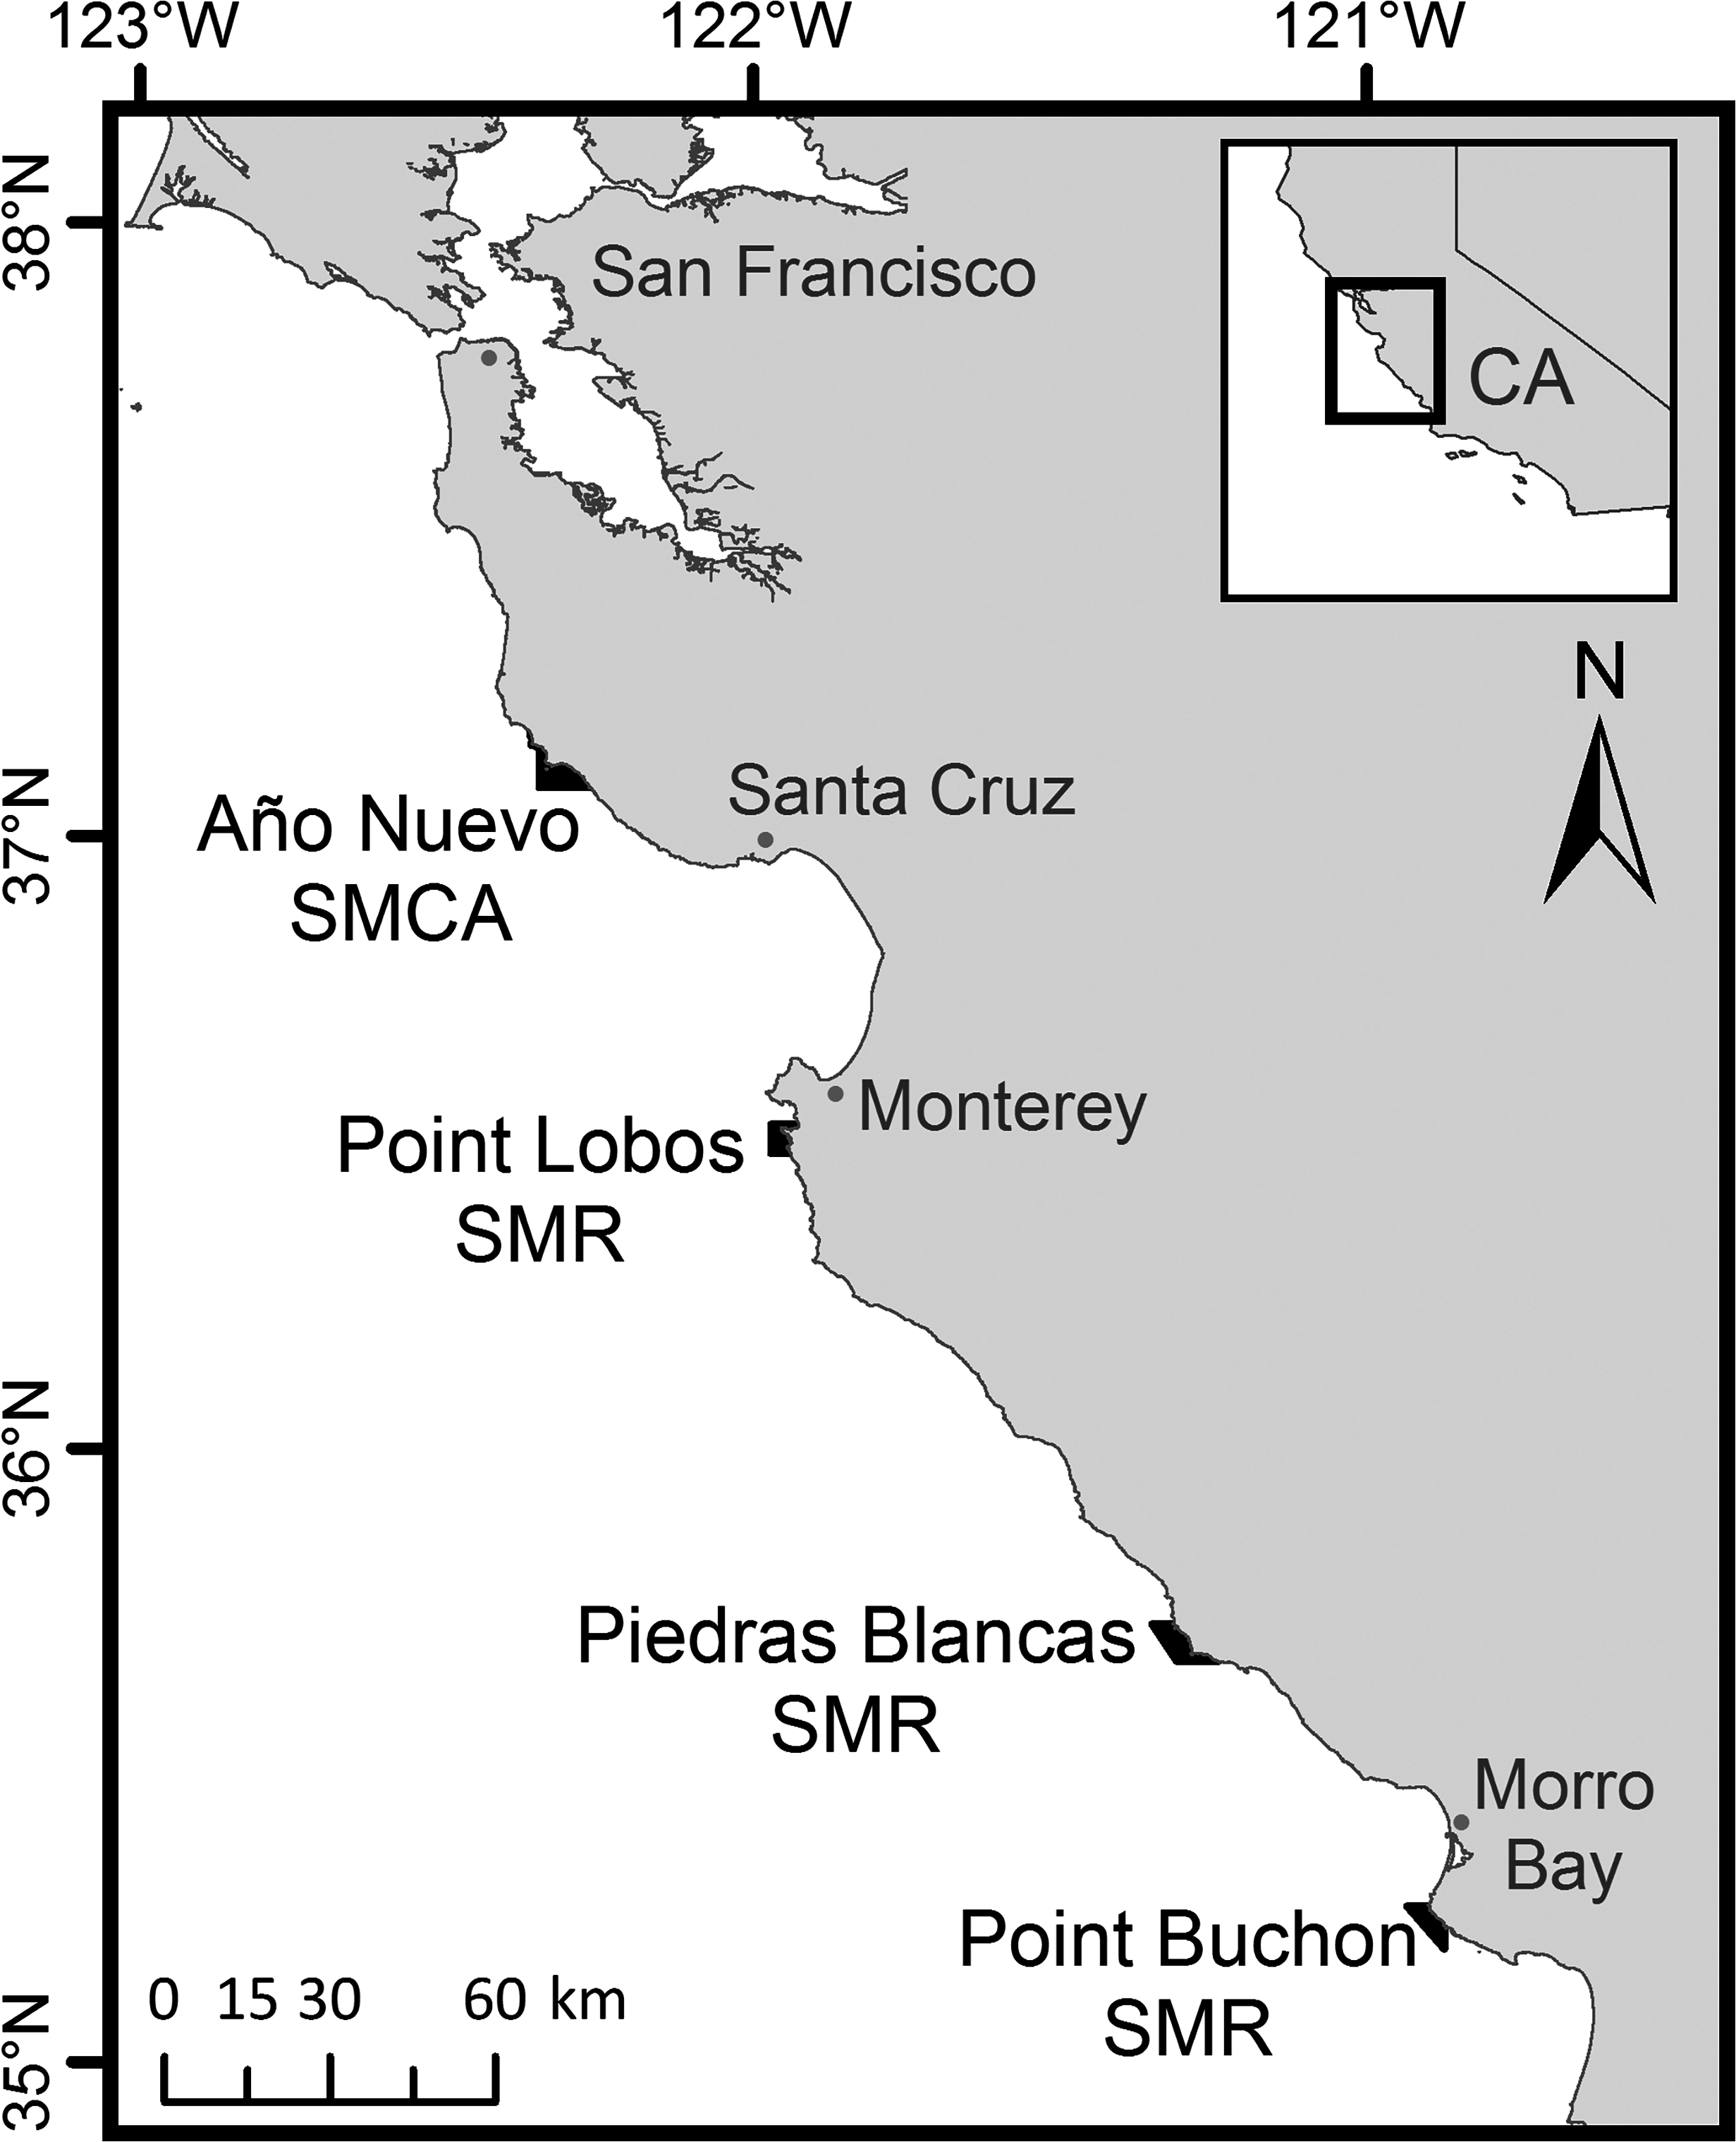 Location of the four study areas in central California.  Año Nuevo State Marine Conservation Area (SMCA), and the Point Lobos, Piedras Blancas, and Point Buchon State Marine Reserves (SMRs).